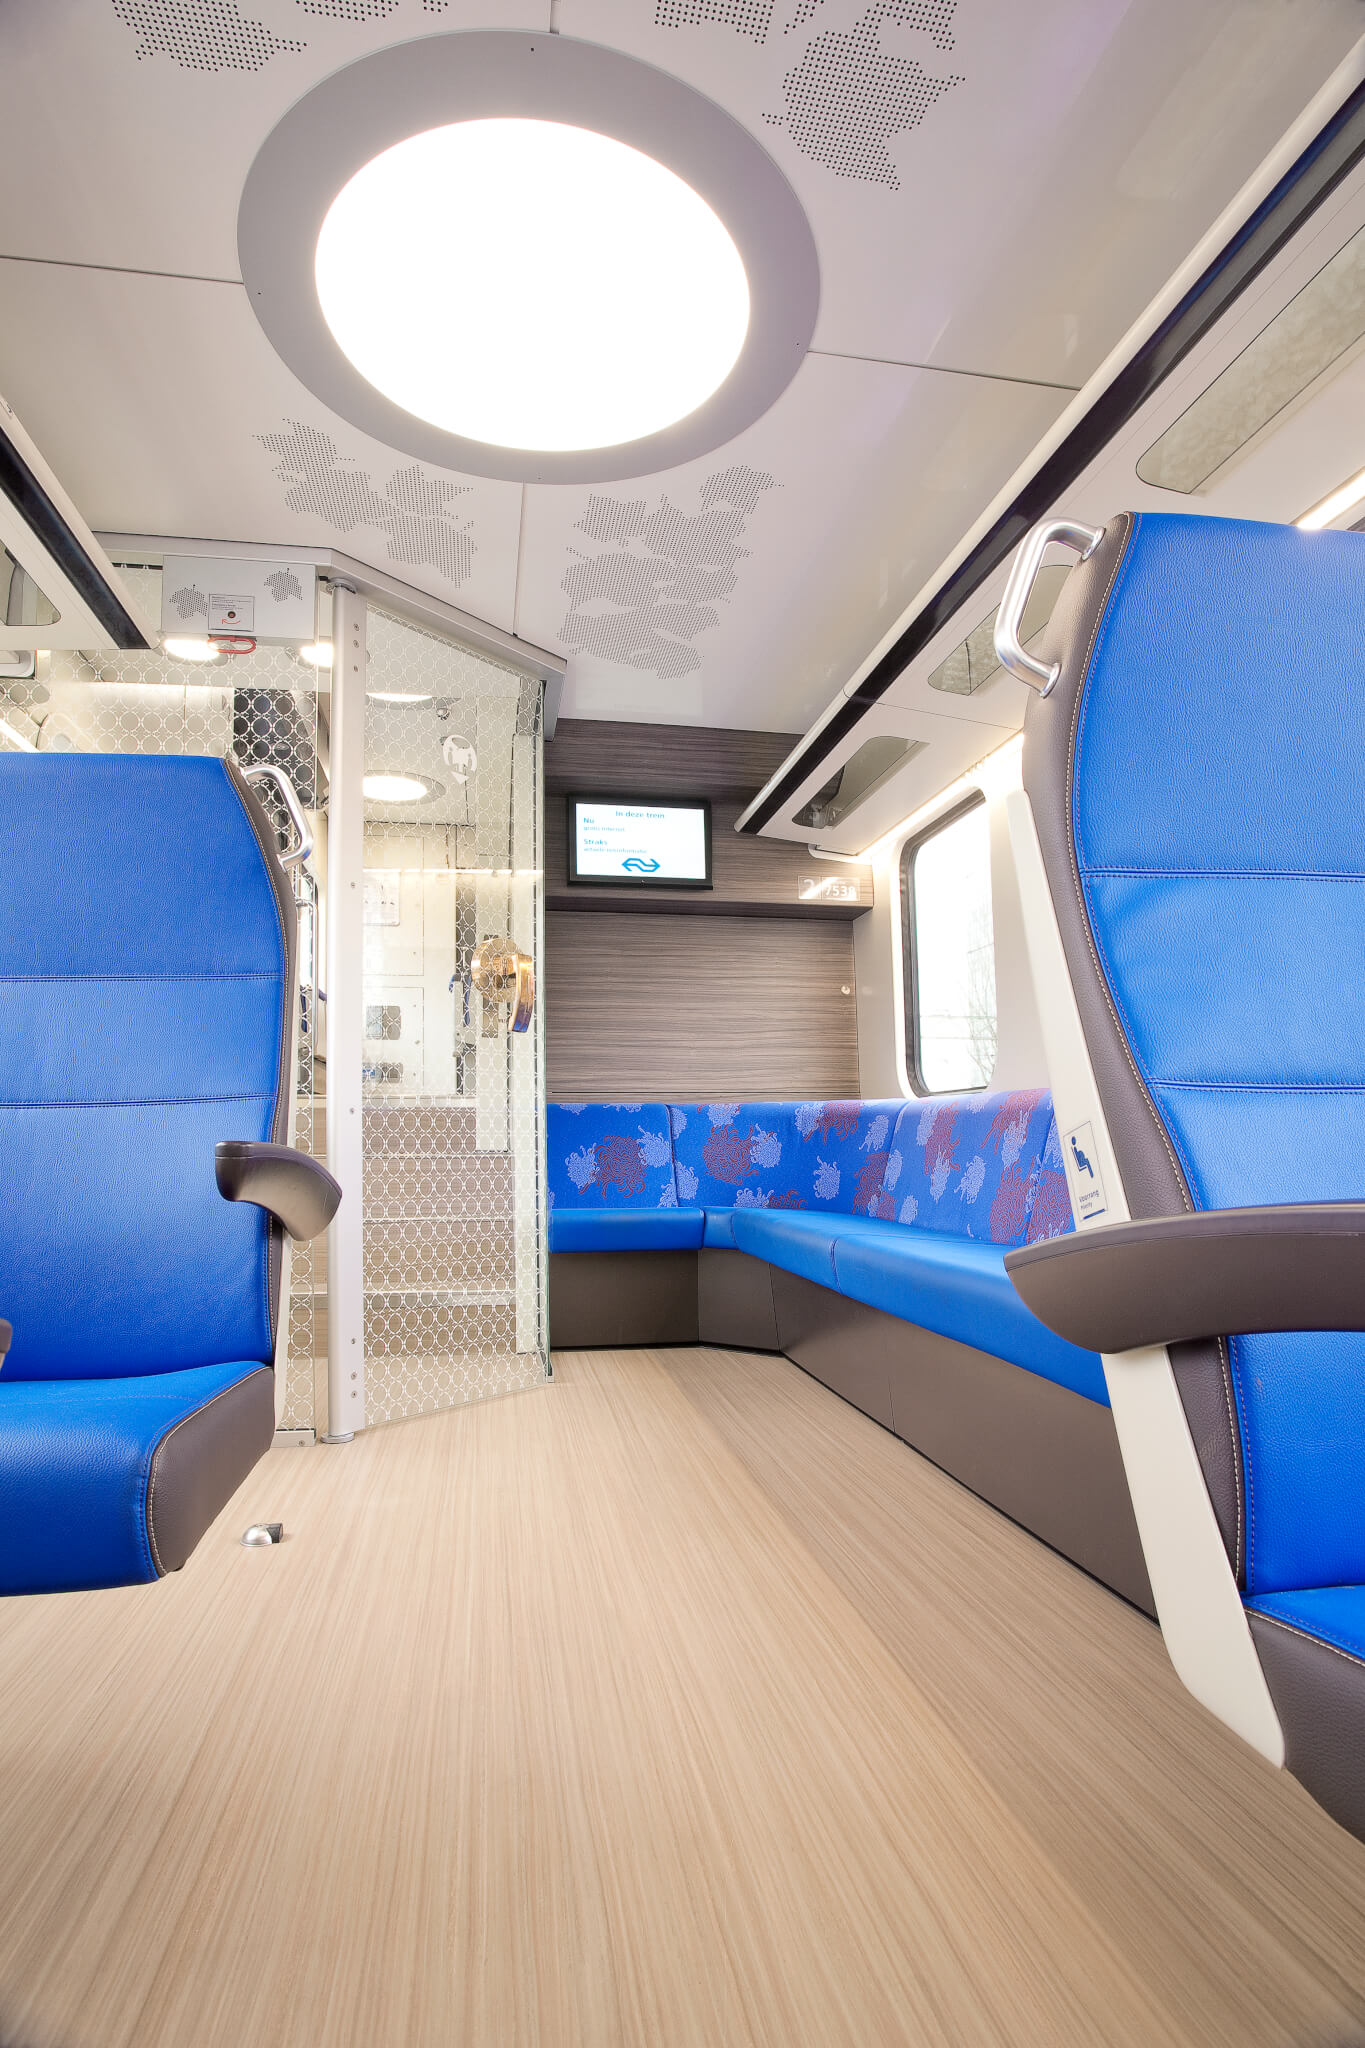 Railway news ns trains interior carriage for Interior decorators dartmouth ns